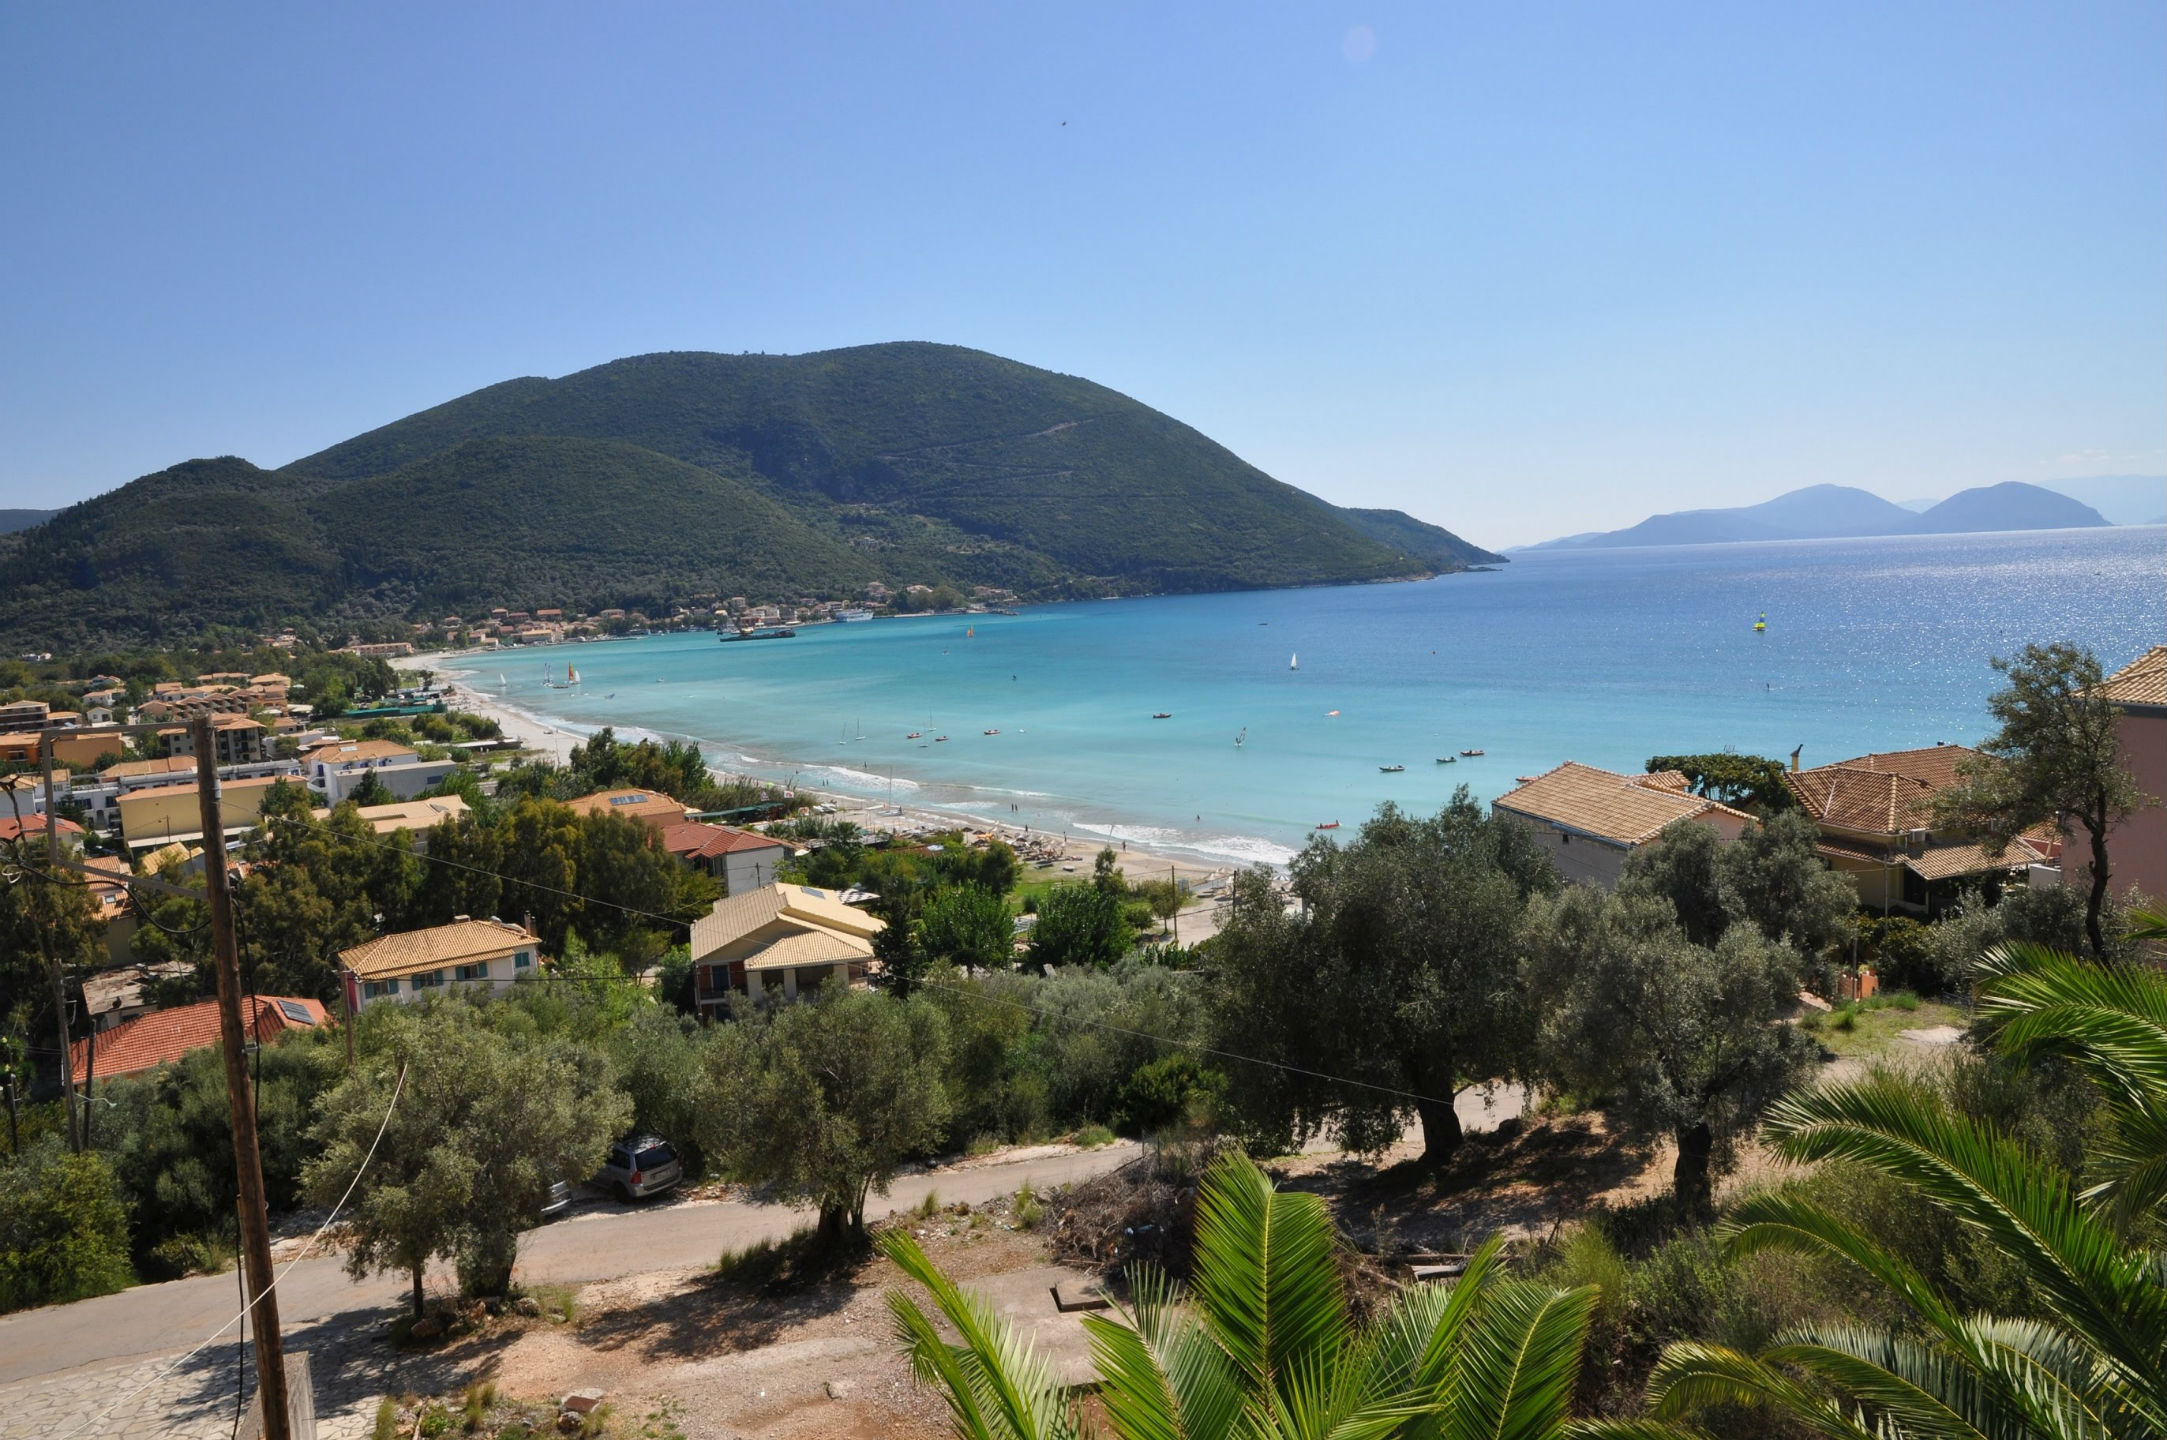 lefkada-beaches-vassiliki-beach-left